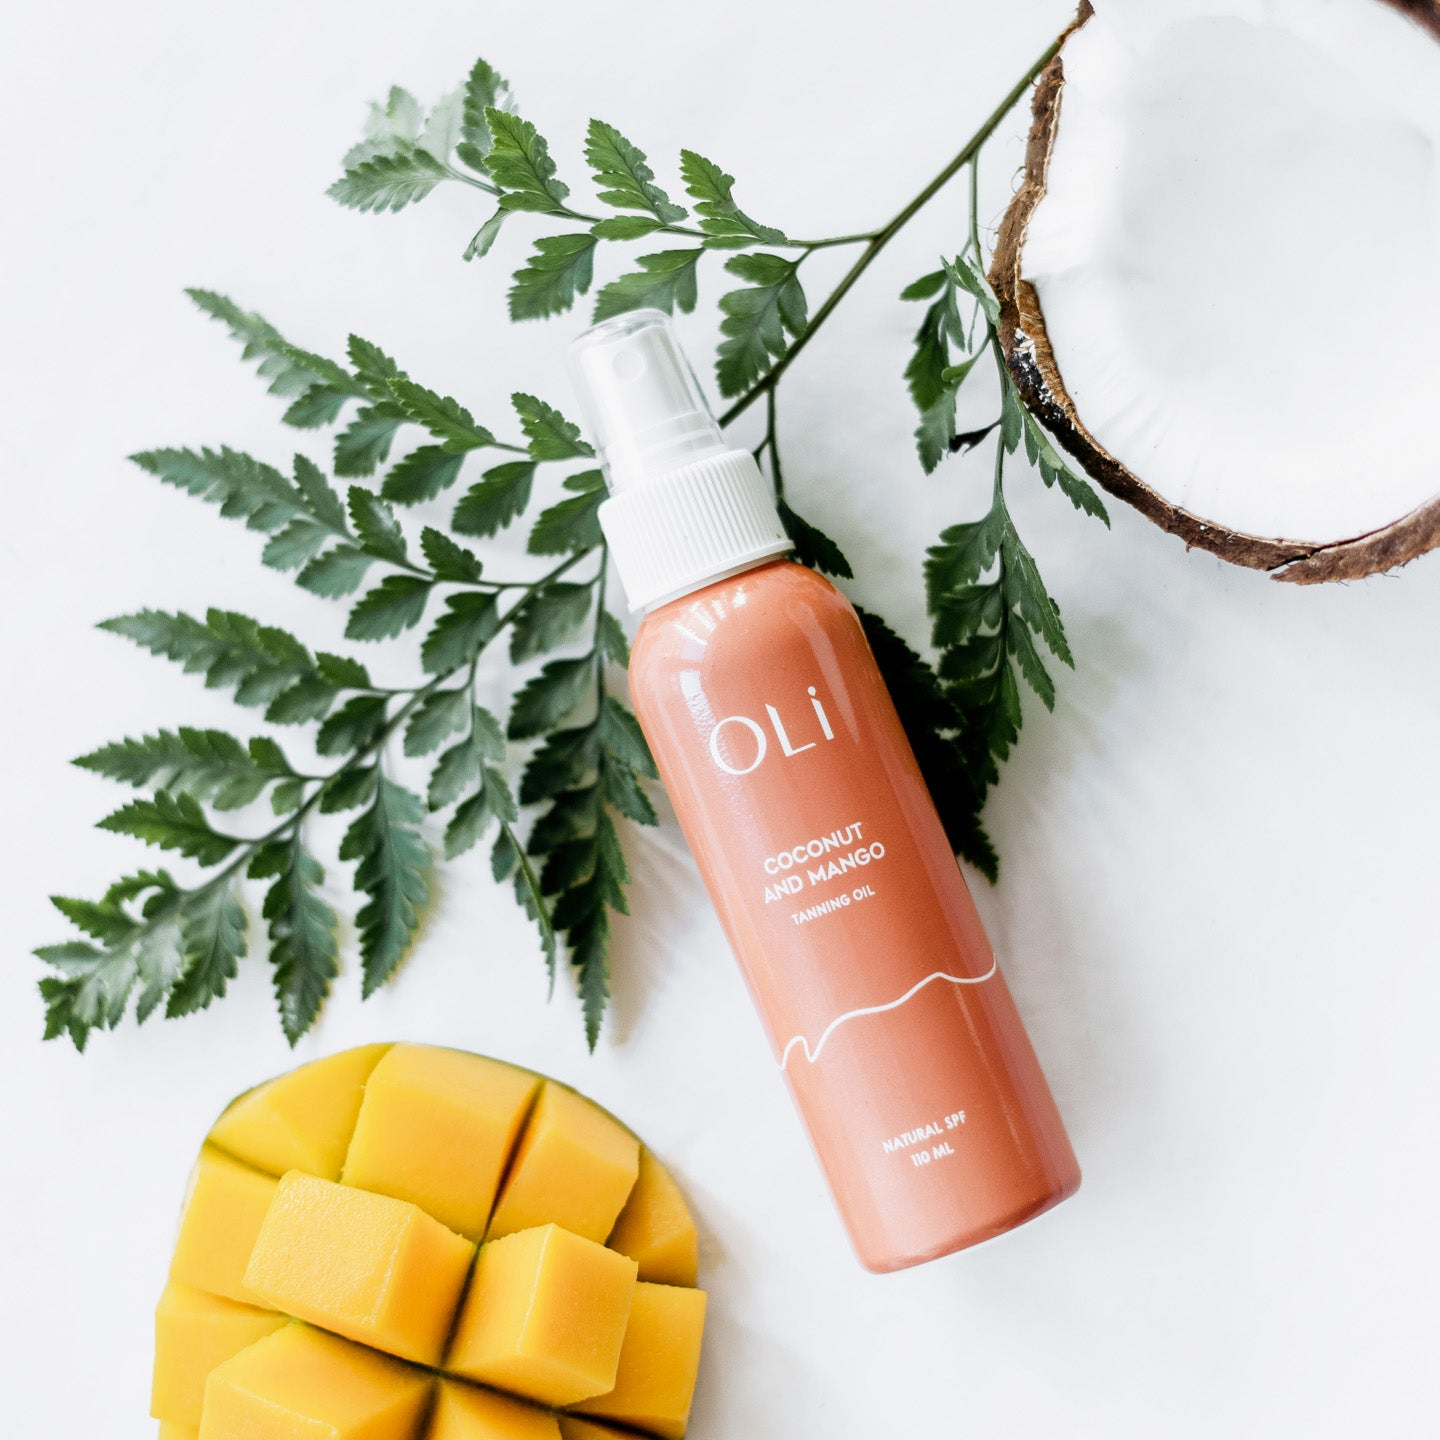 Oli Premium Natural Tanning oil, Coconut and Mango oli tanning oli, Natural SPF